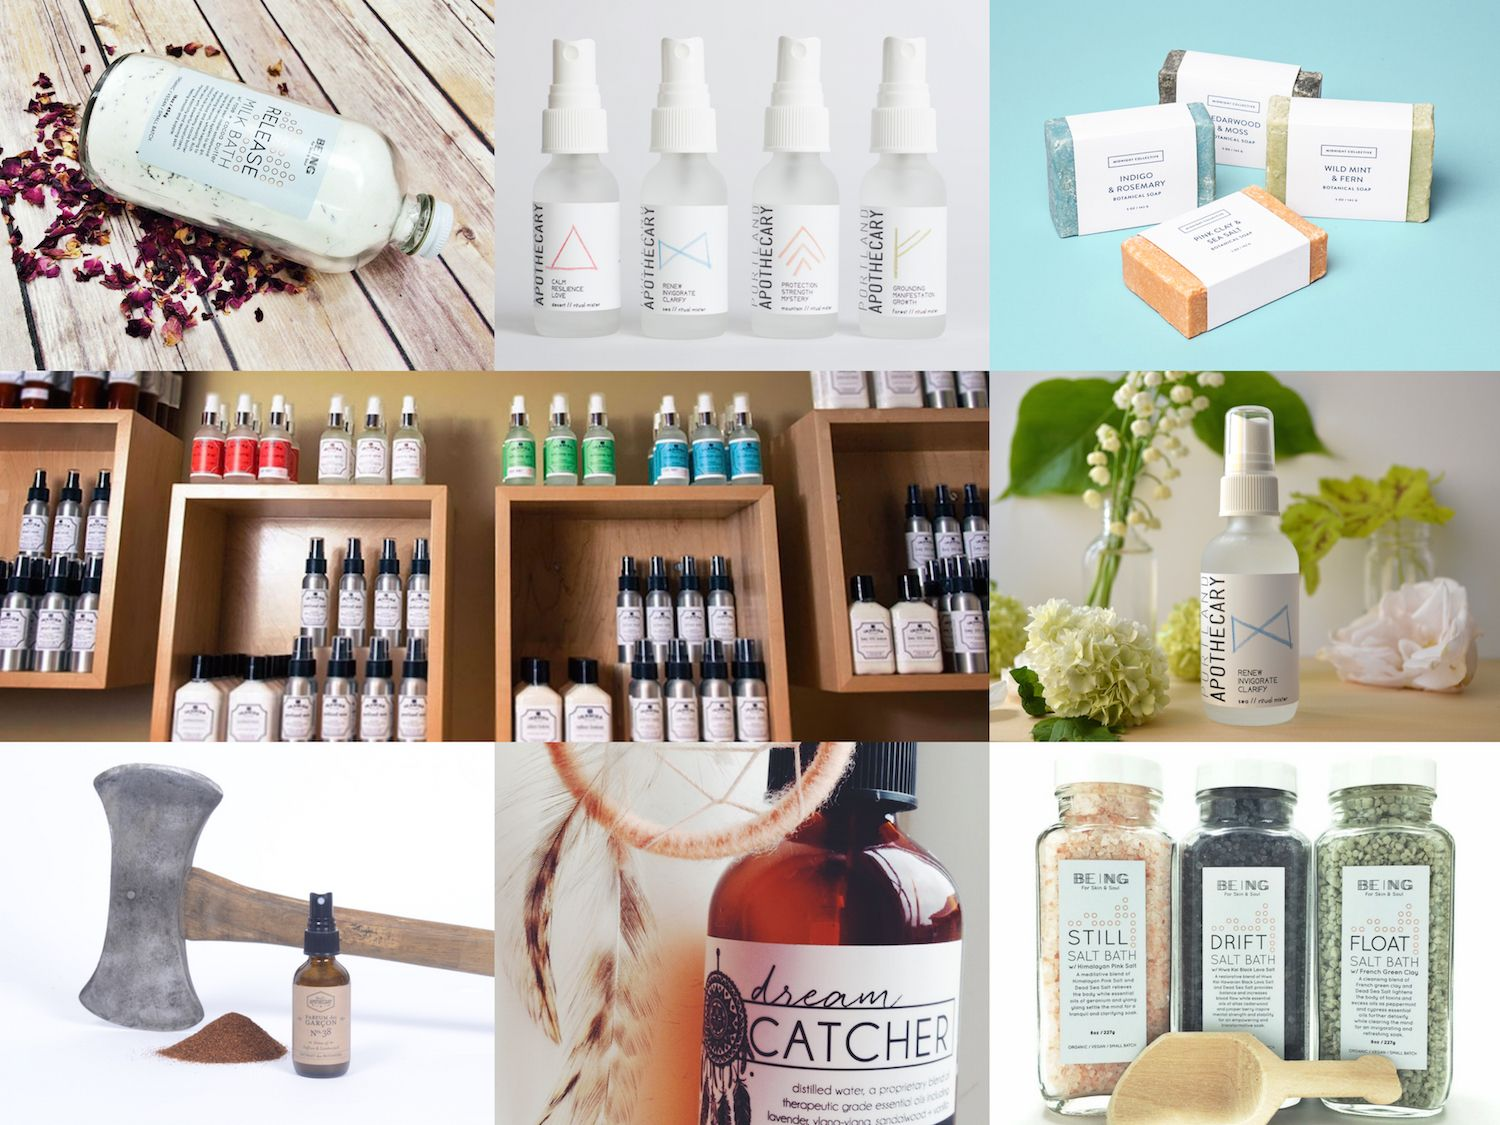 These local companies use essential oils and natural